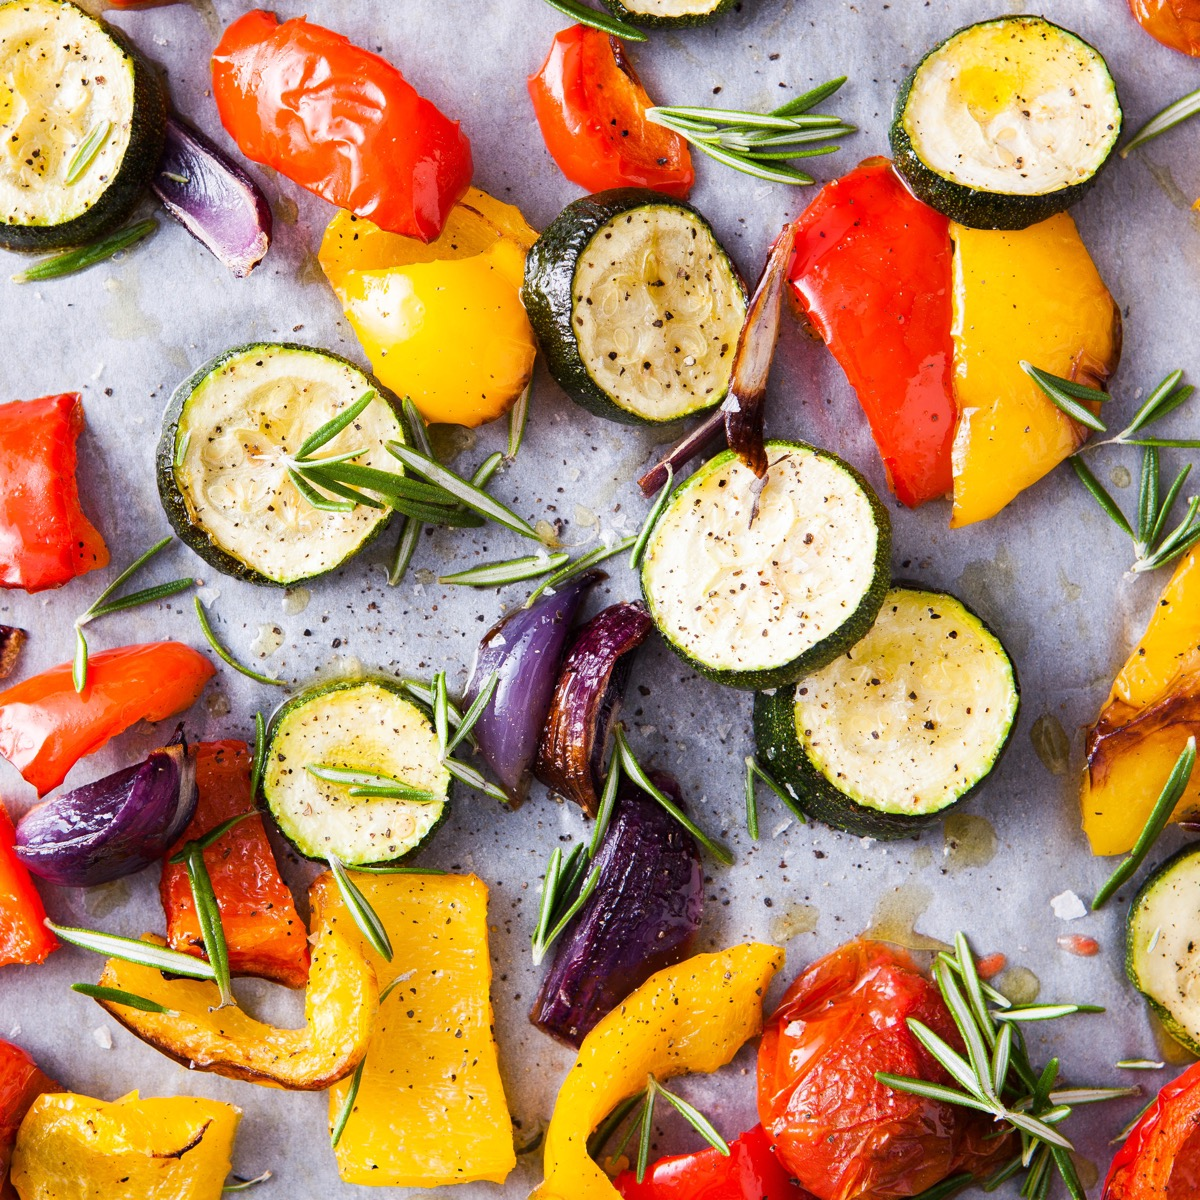 Ready to Roast Mediterranean Vegetables